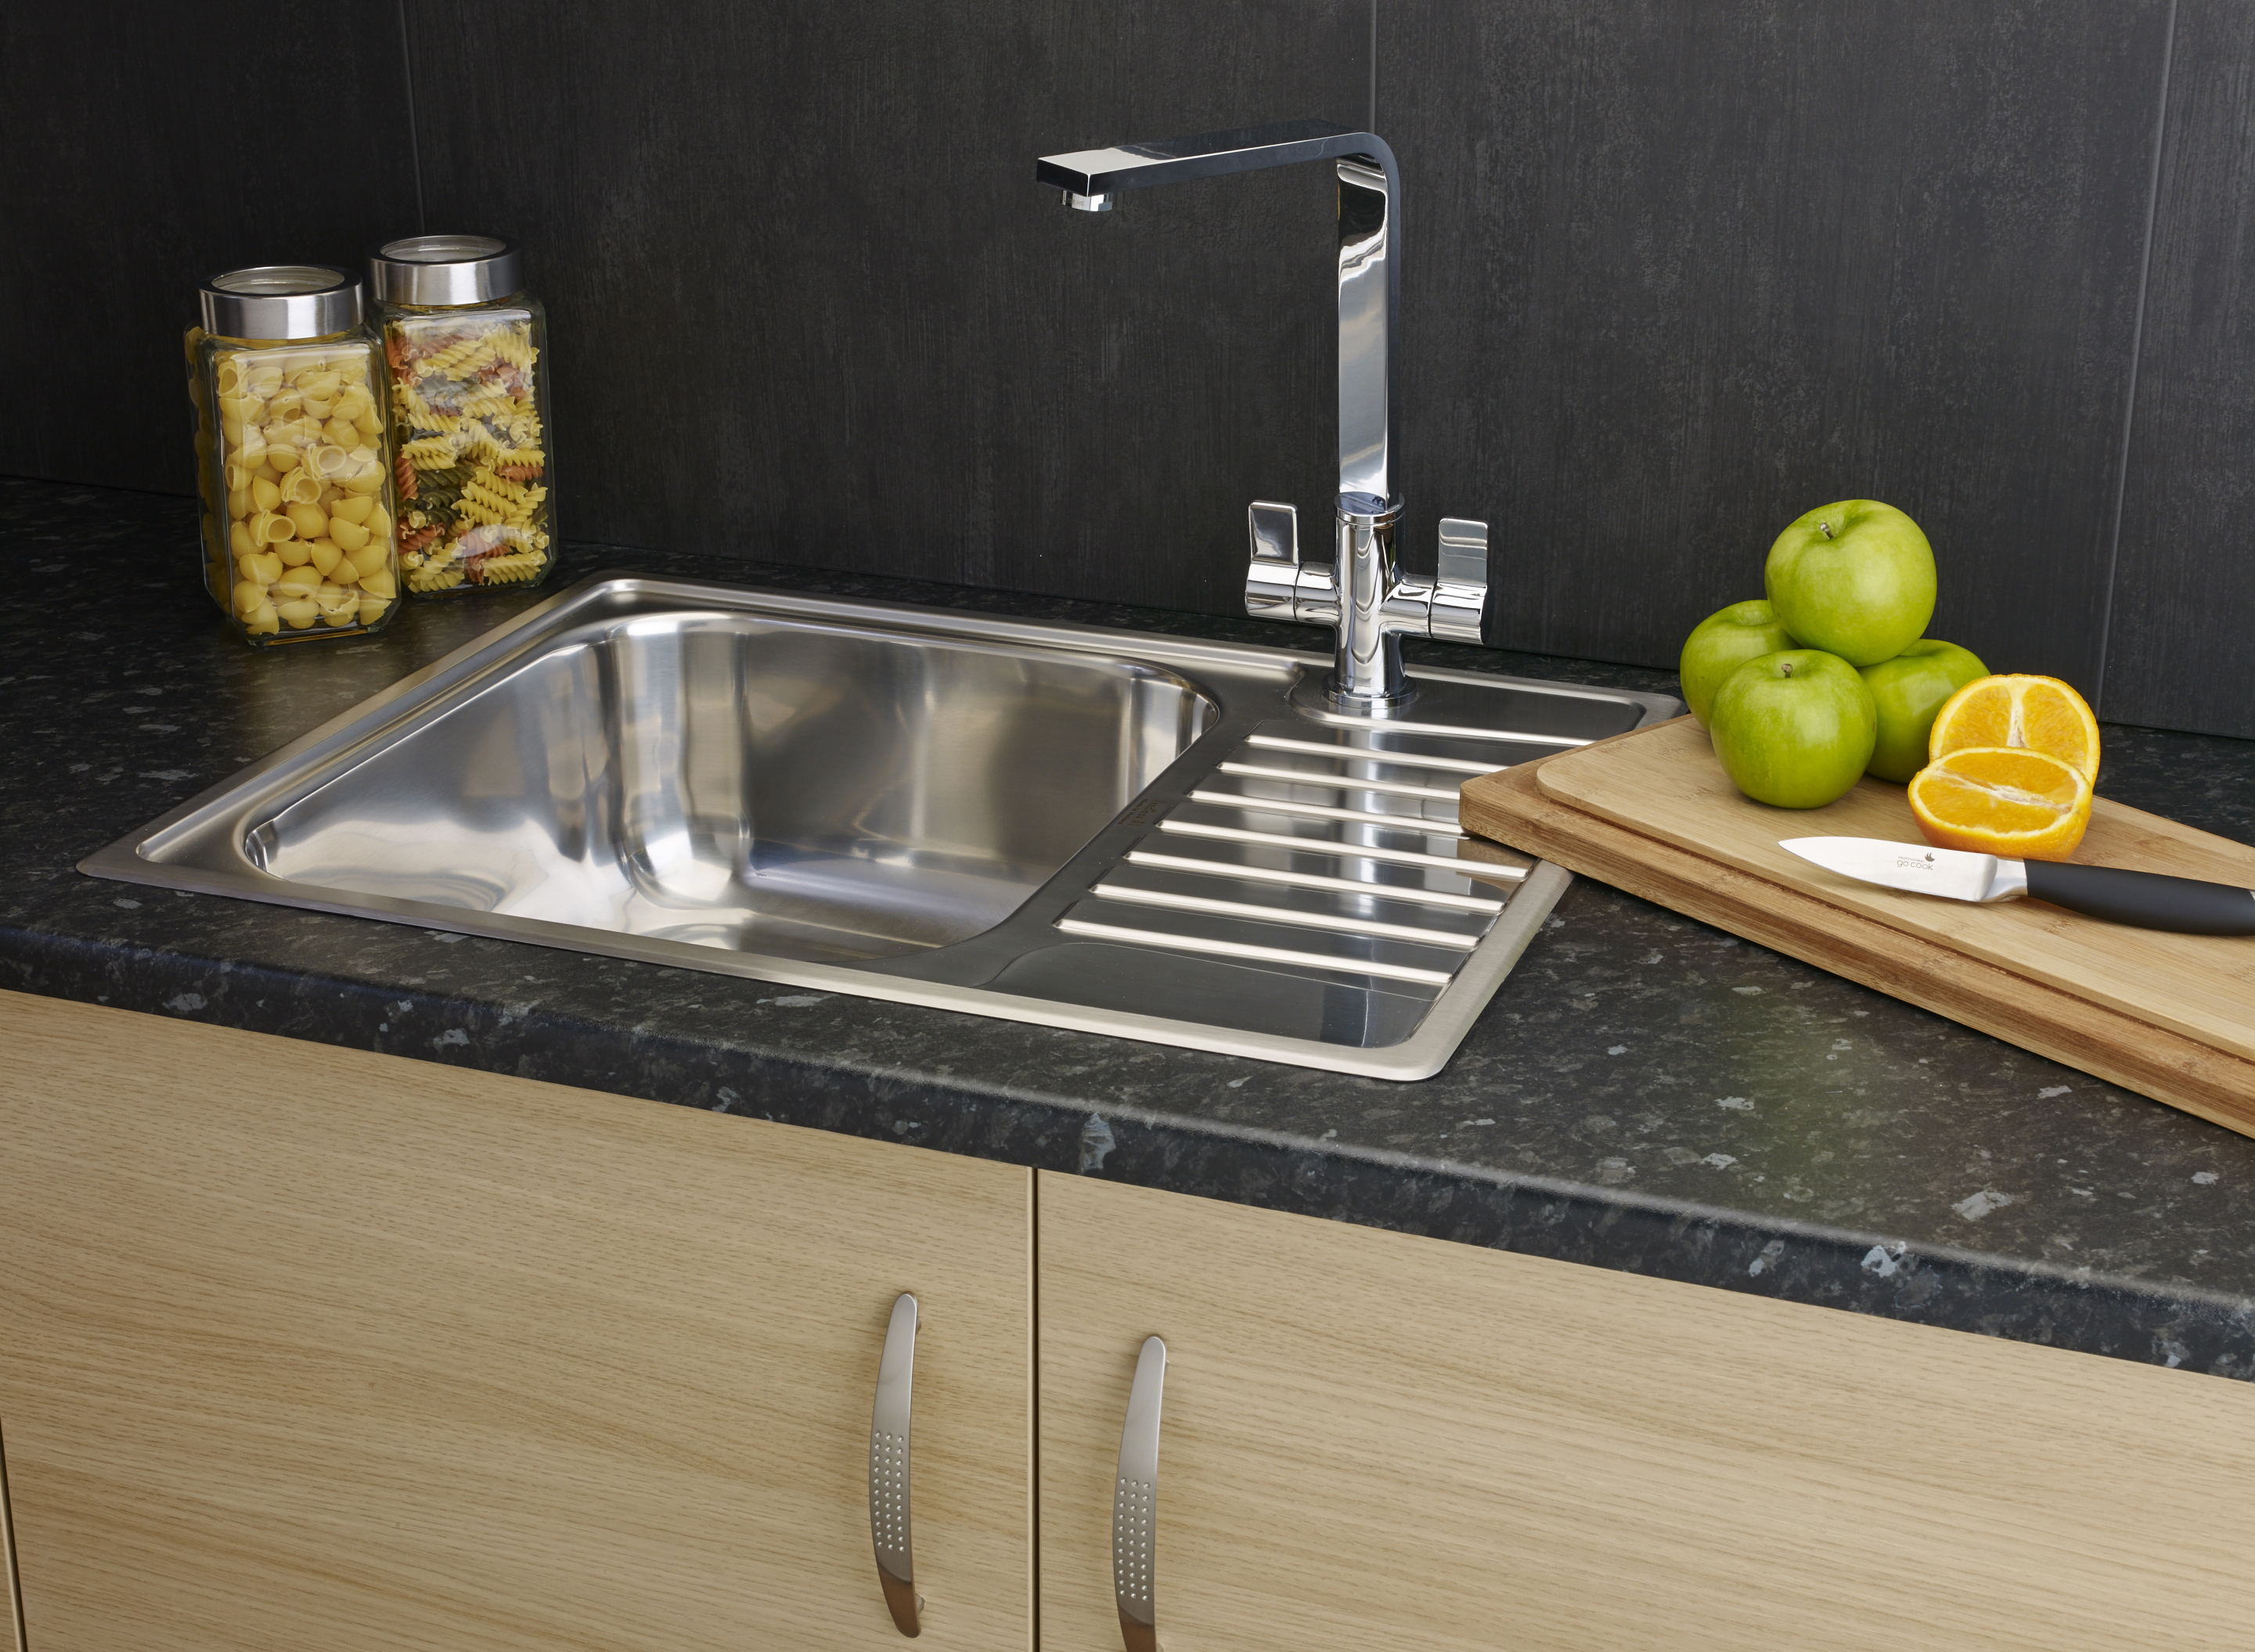 Featuring Modern Styling Combined With A Number Of Accessories The Sink Has A Standard Size Bowl And A Half Drainer And Measures 615 X 490mm In Total